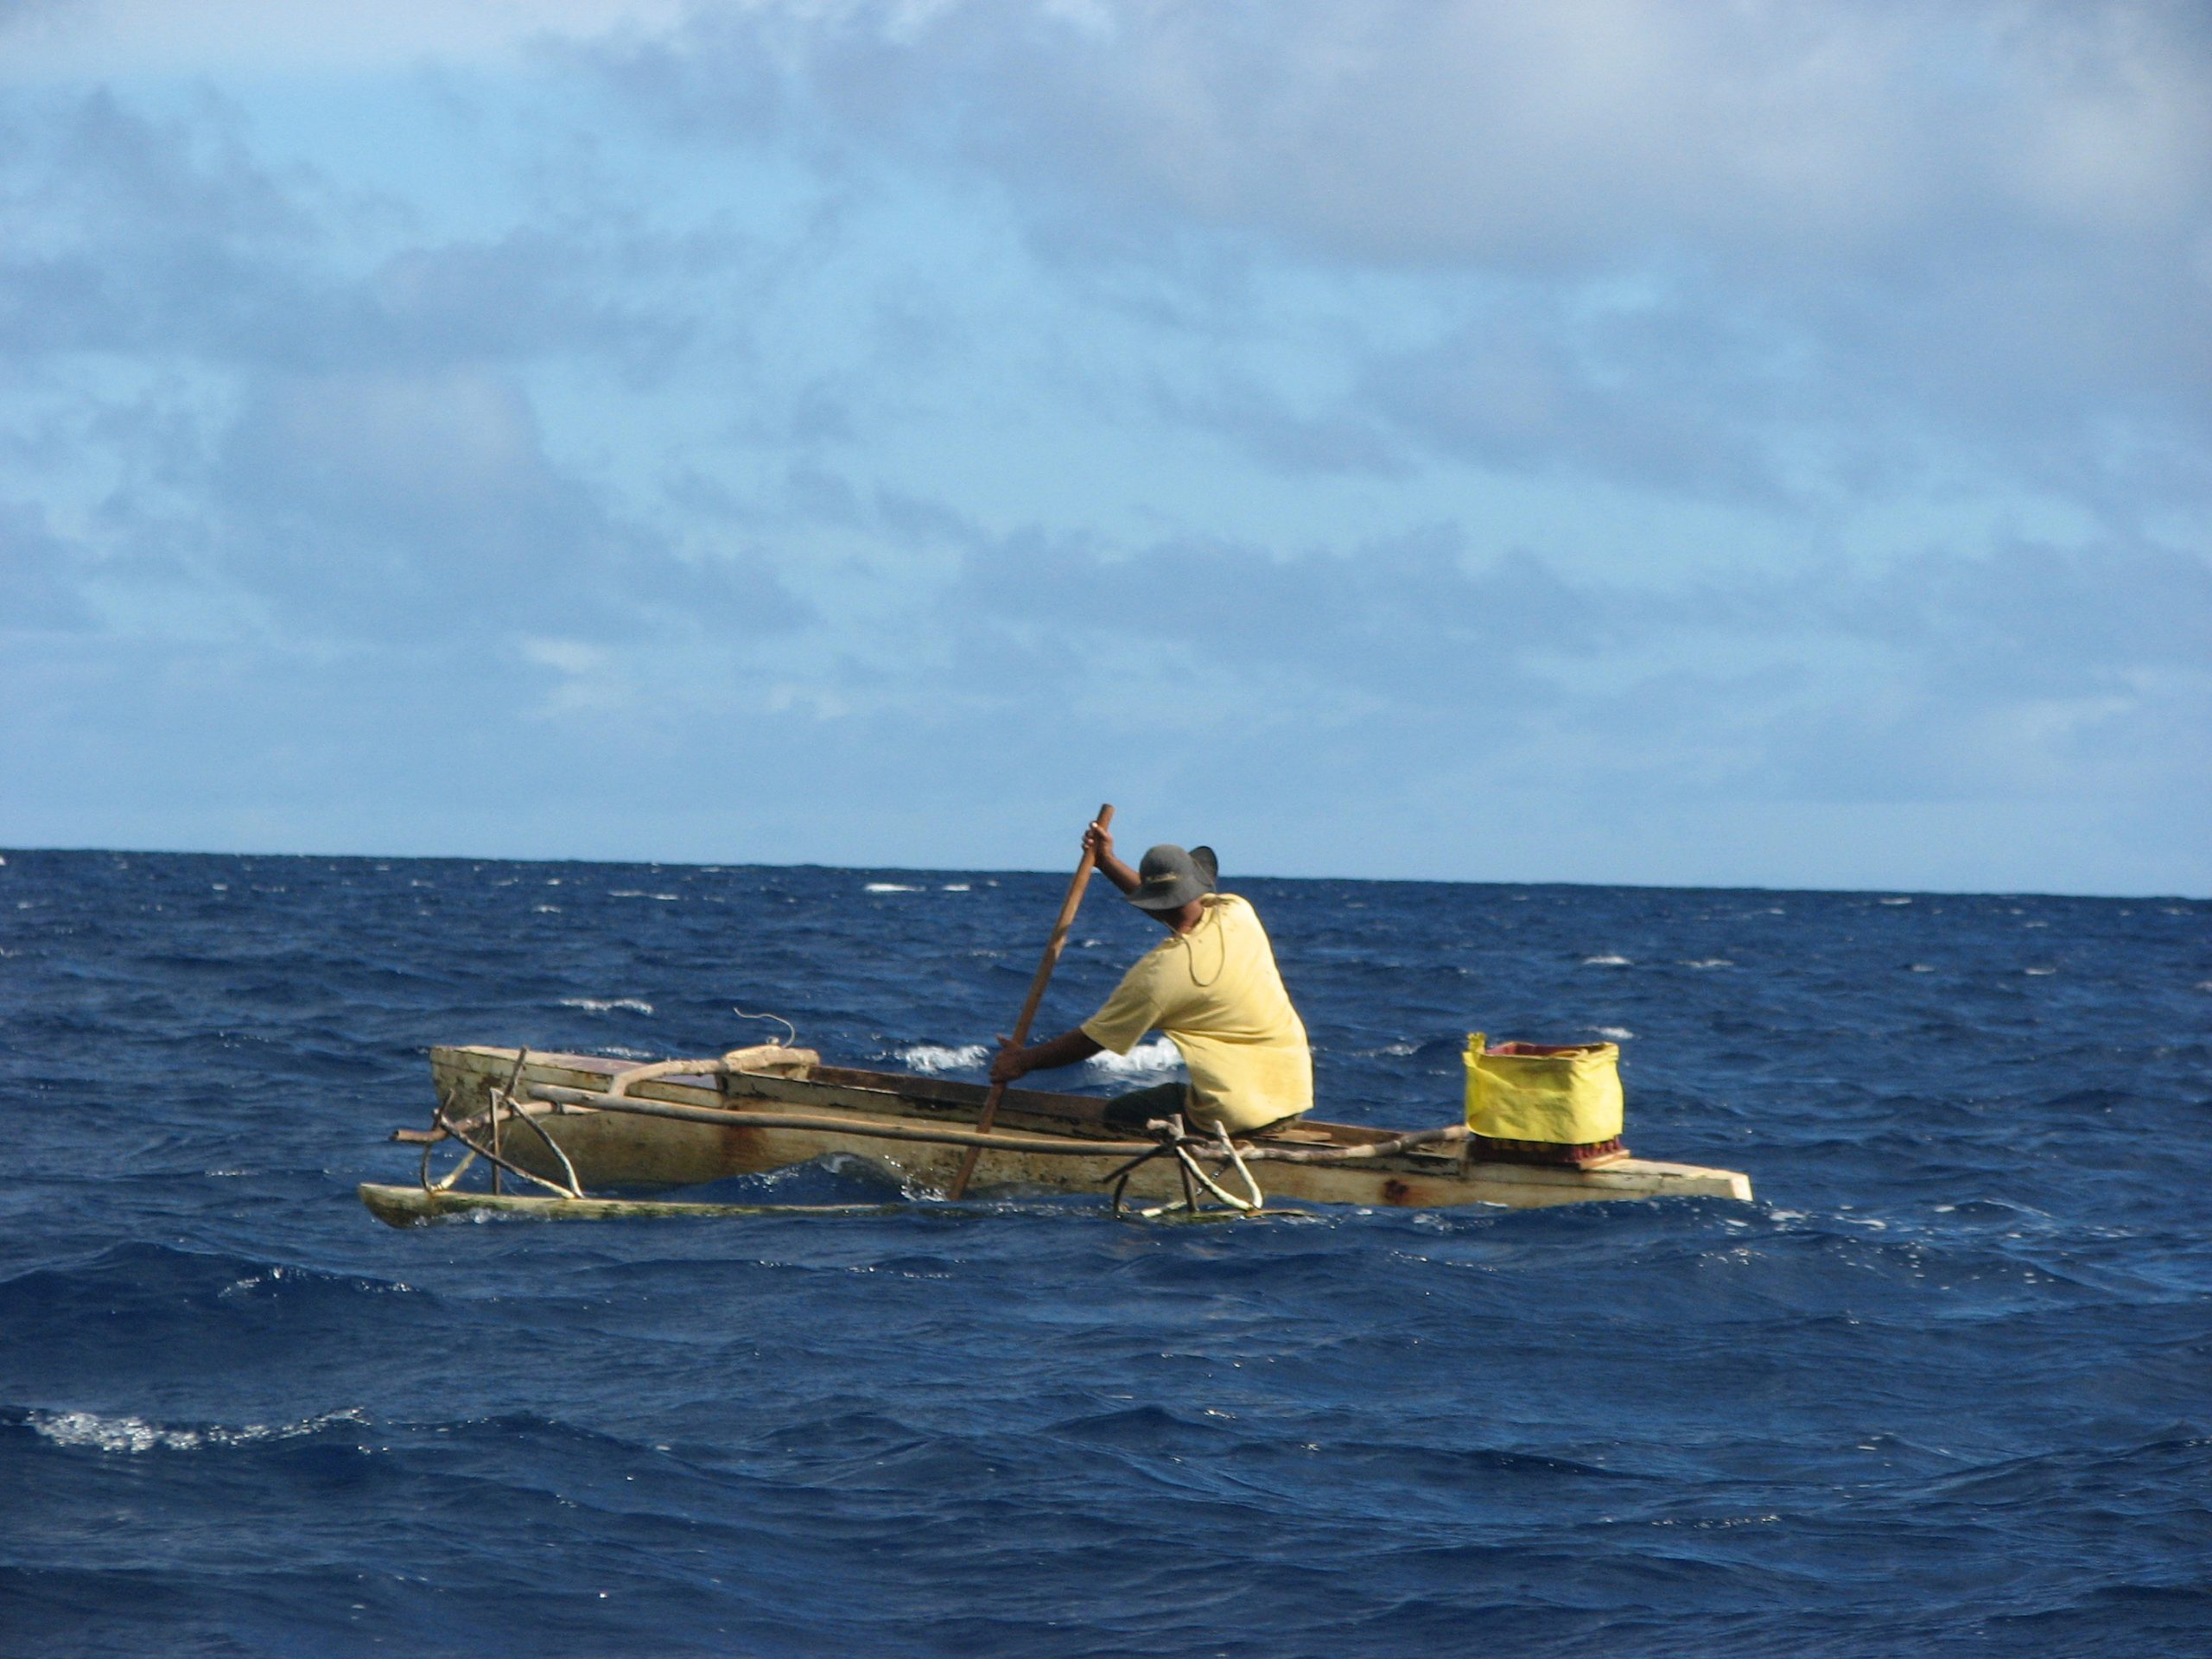 A canoeist paddles between the islands of Vava'u, Tonga. A new University of Utah study uses mathematical modeling to get a better idea of the strategies employed by early seafarers when they used outrigger canoes to settle the islands of the vast Pacific Ocean between 3,500 and 900 years ago.